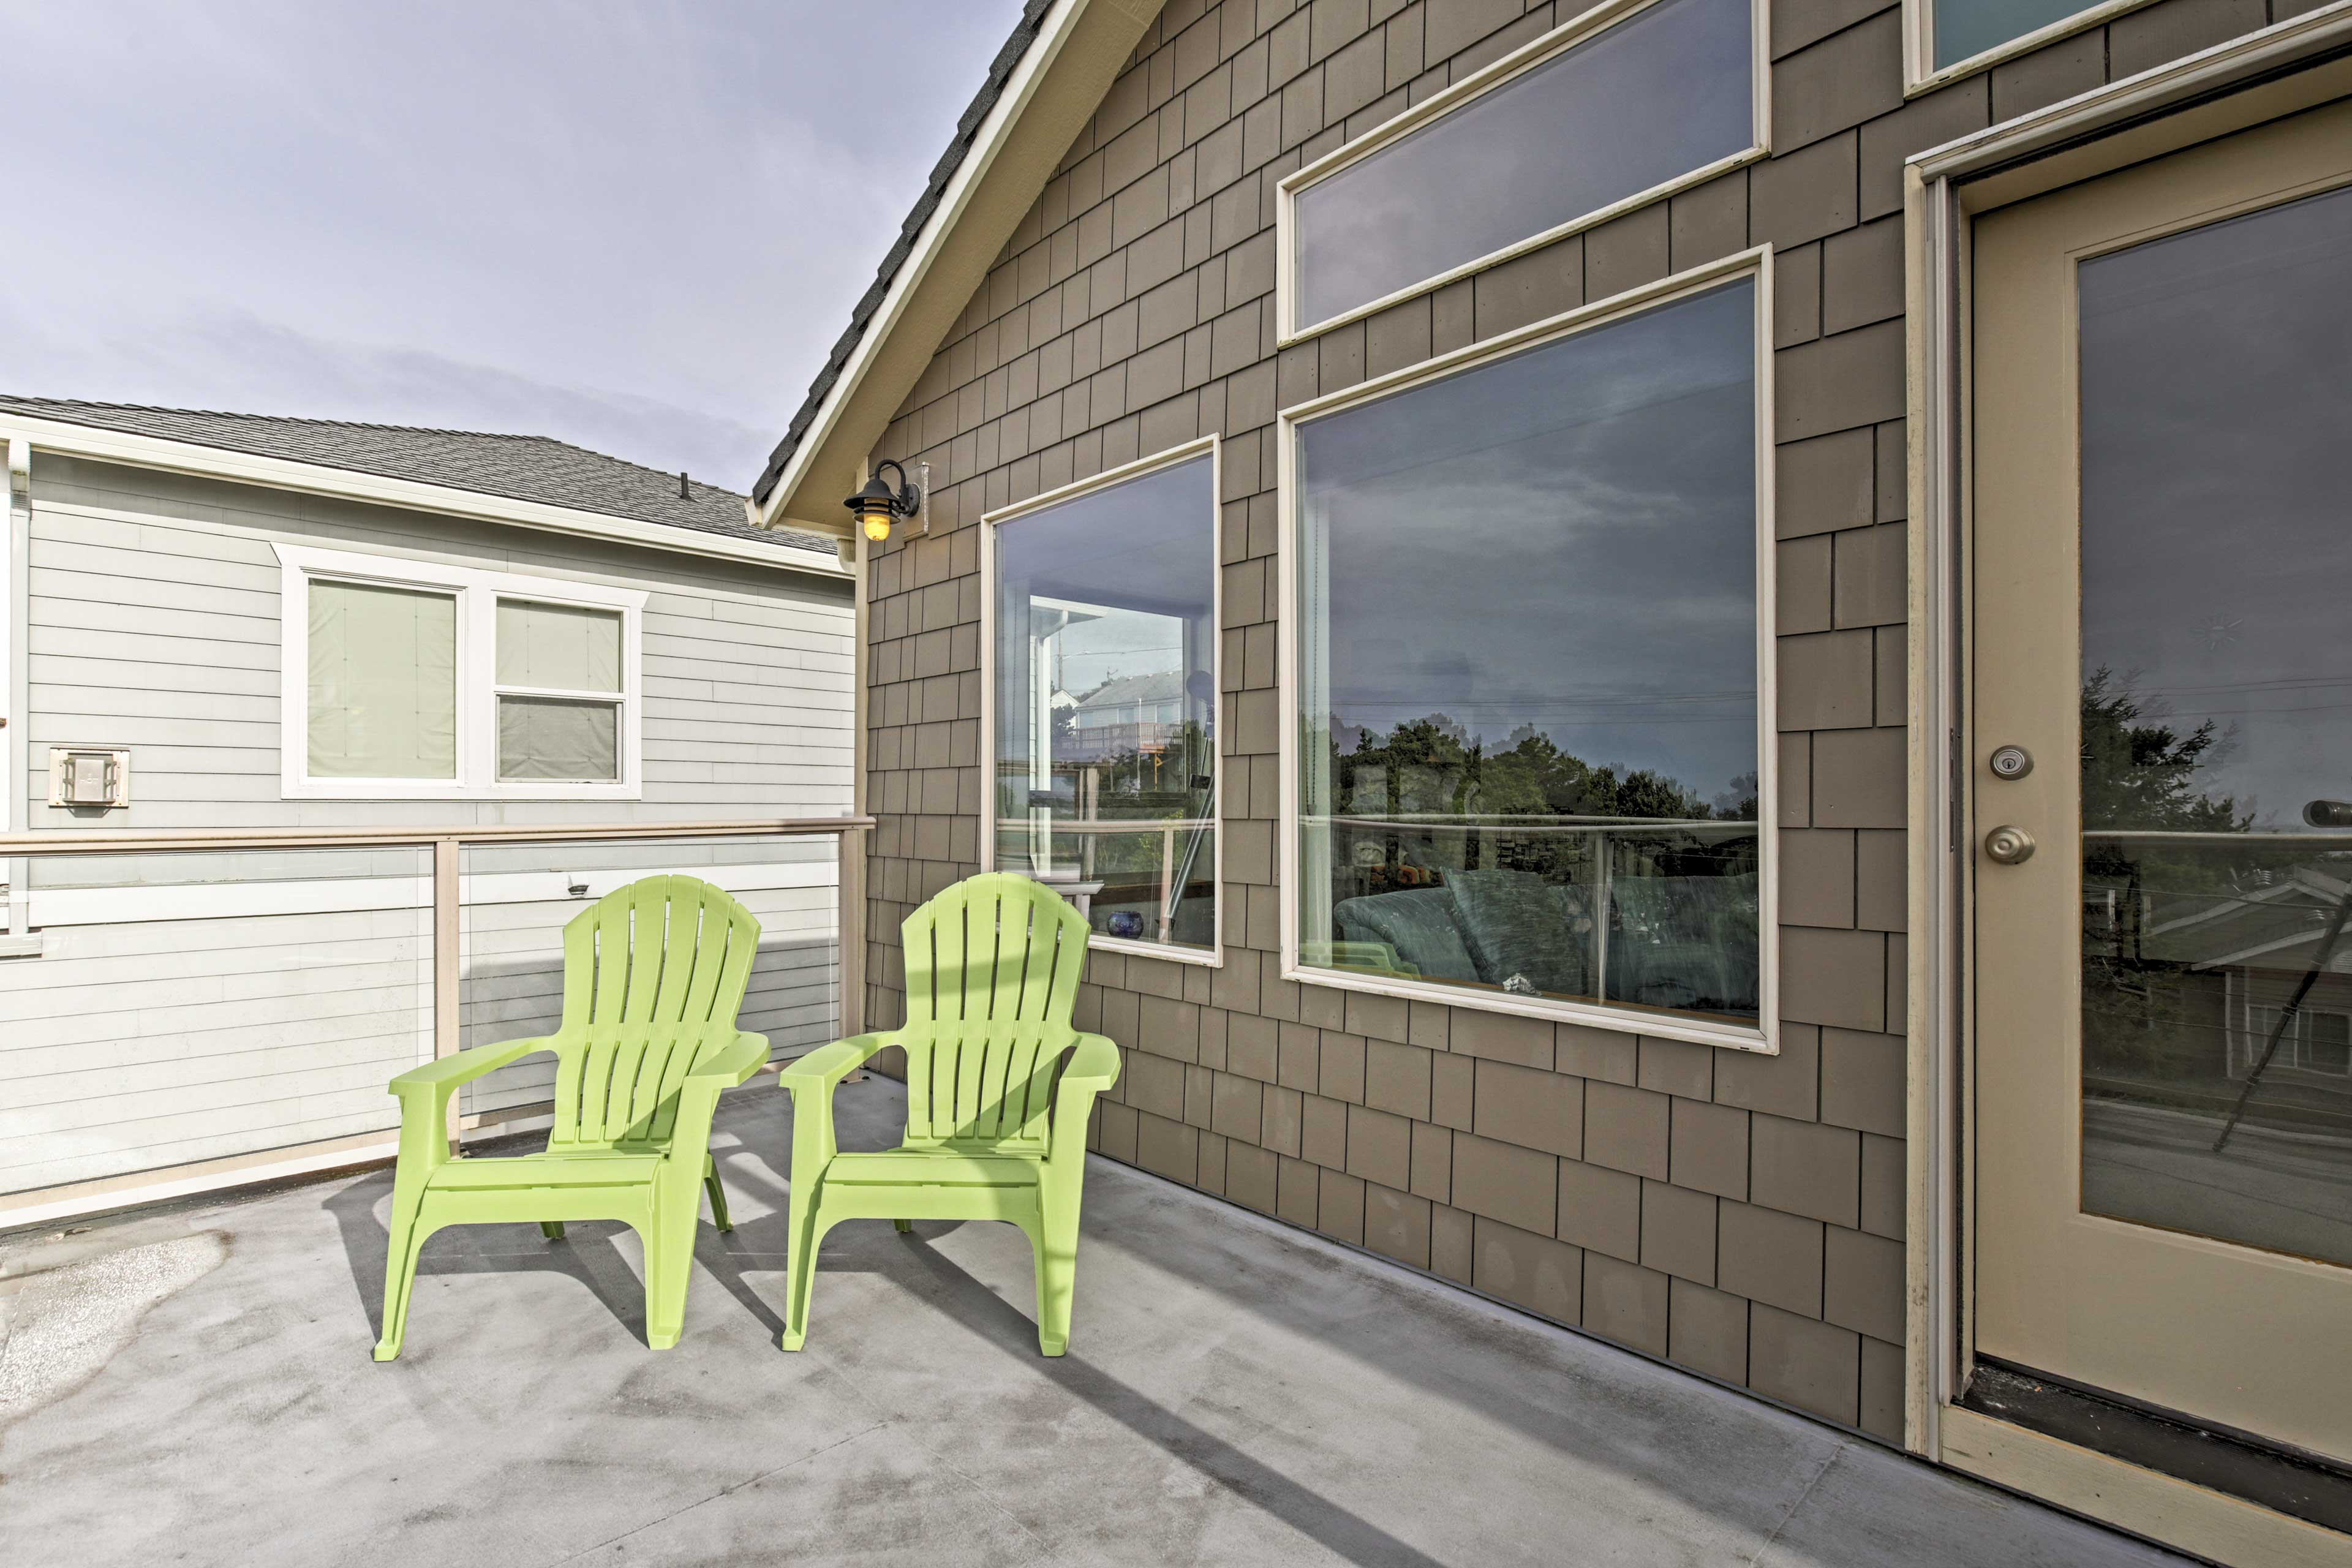 Soak up the sun's rays while you lounge in these Adirondack chairs.